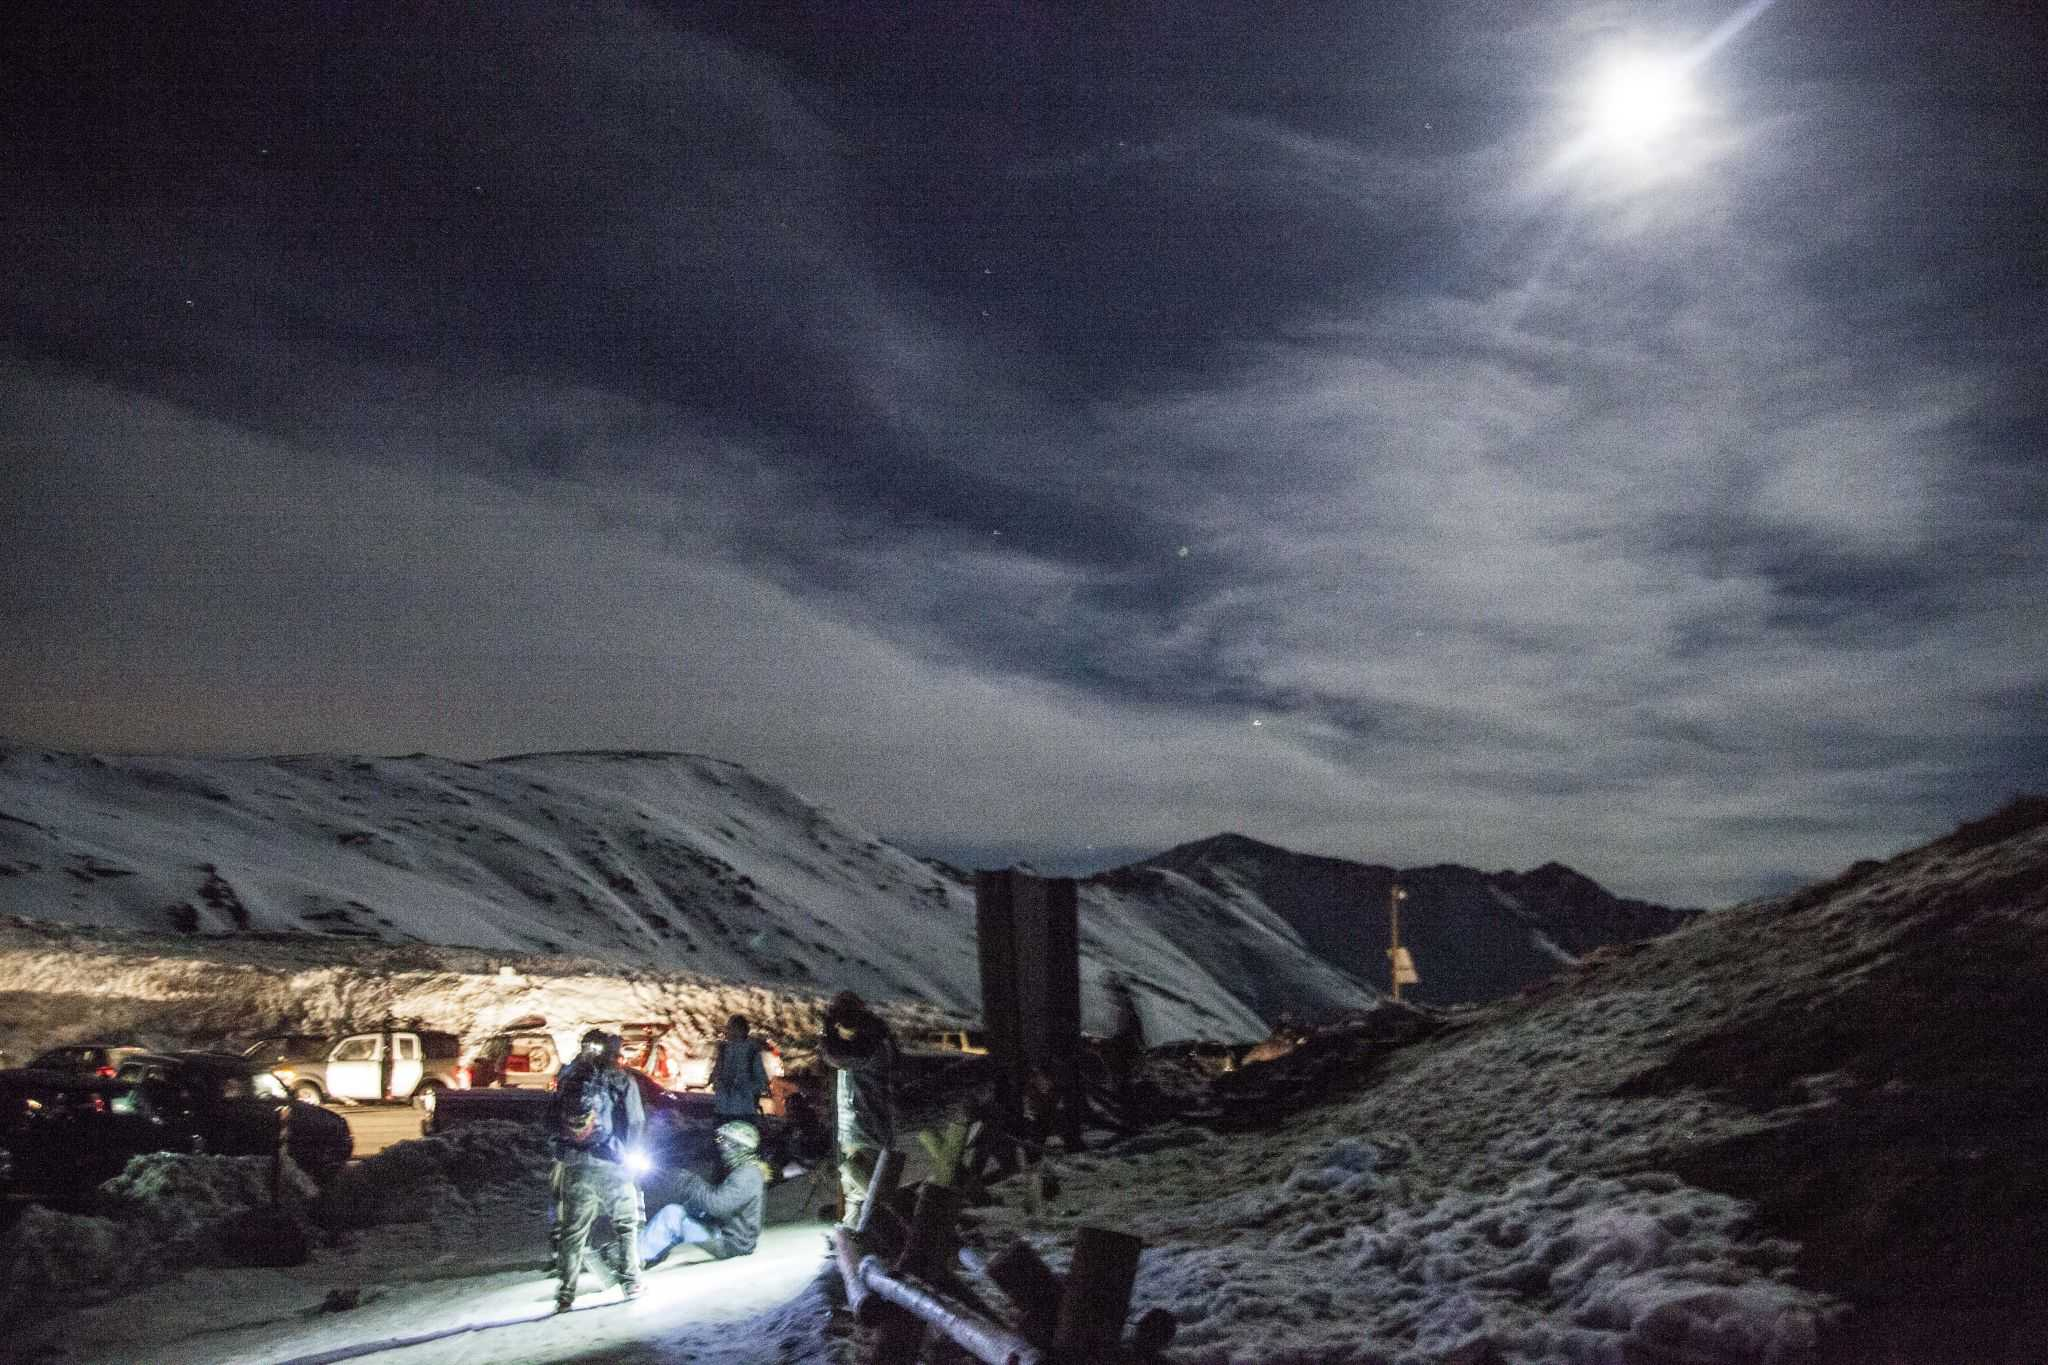 Skiers and boarders ready to hit the slopes  of Loveland Pass. Photo by: Nevin Fowler